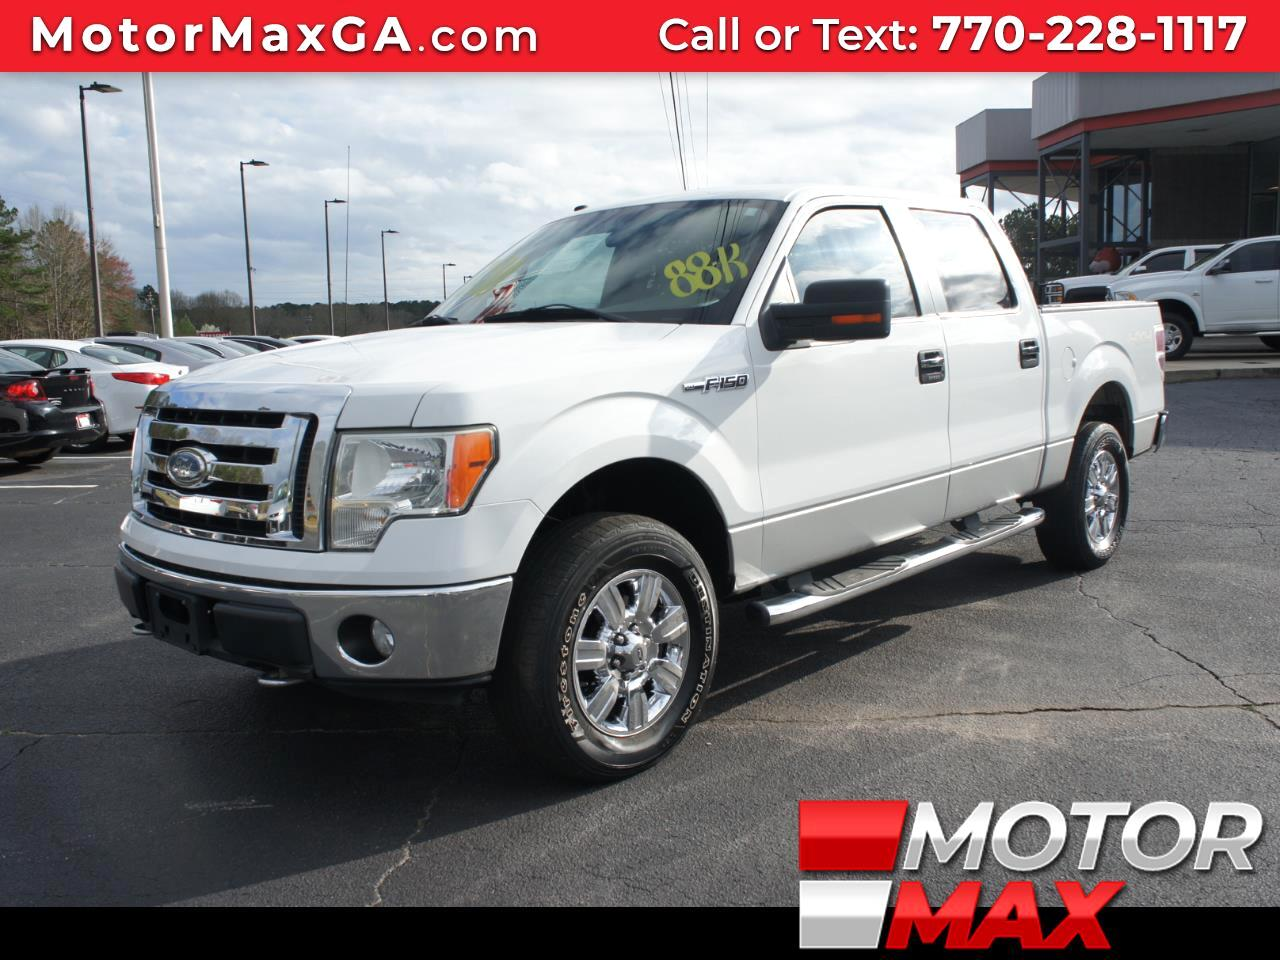 2009 Ford F-150 XLT 4x4 SuperCrew